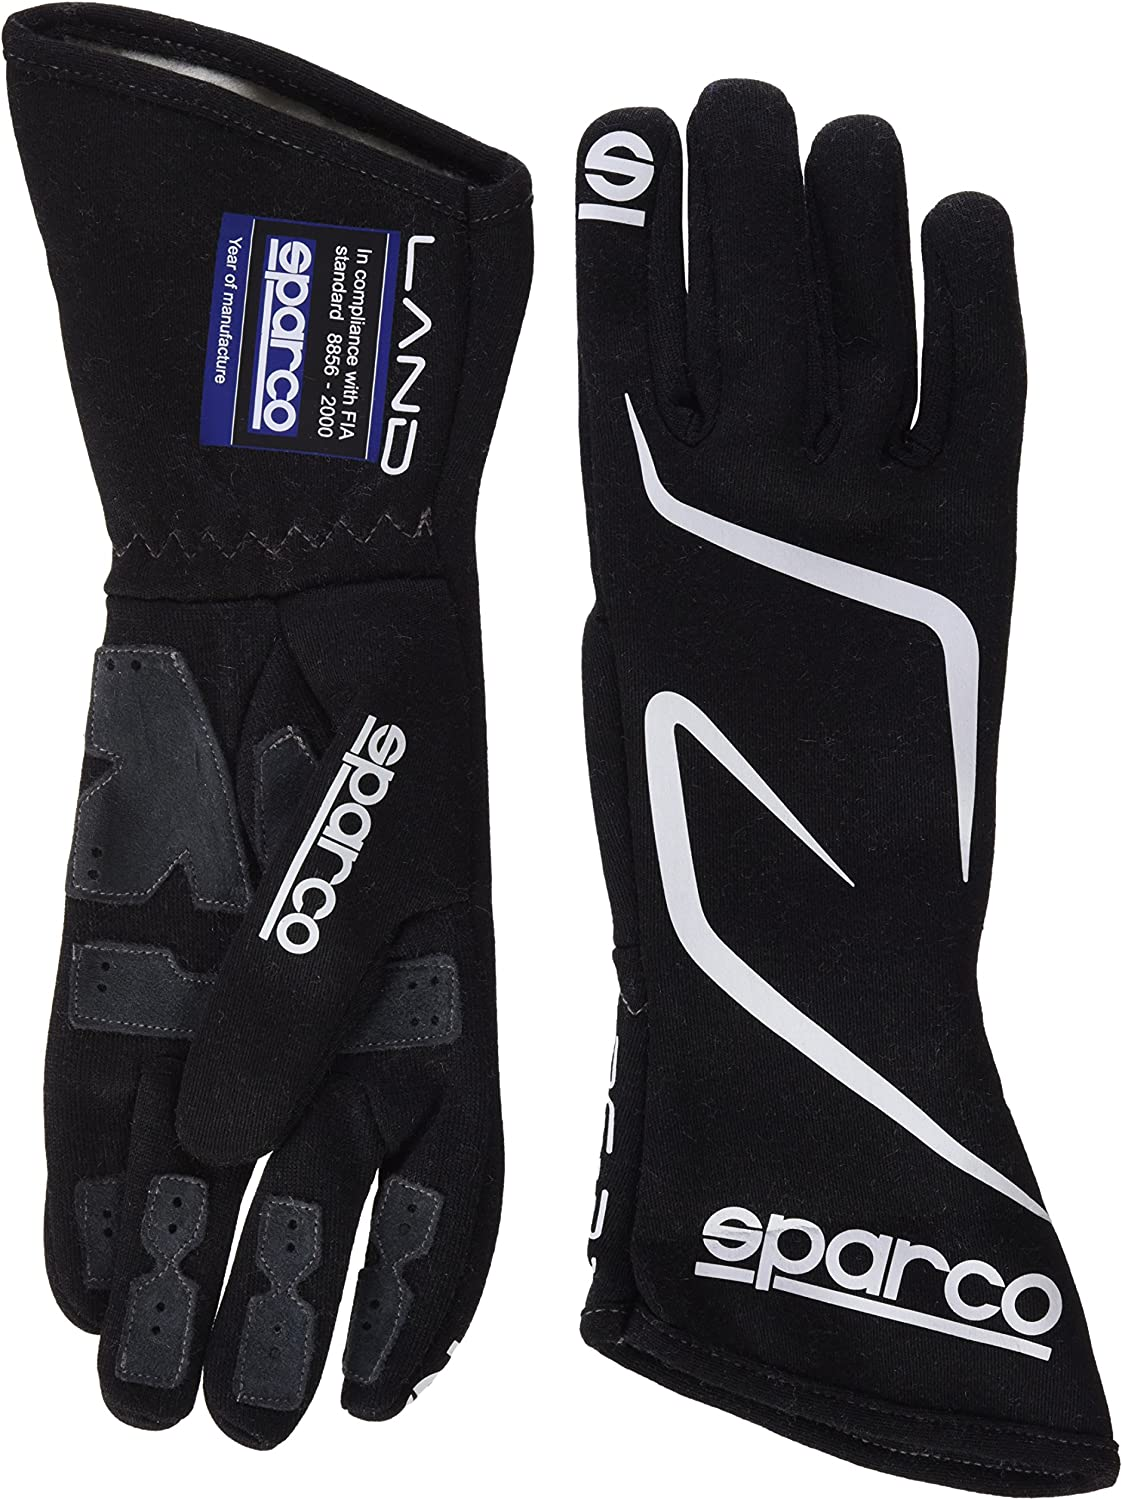 Sparco Gloves New Land rg-3.1/ FIA